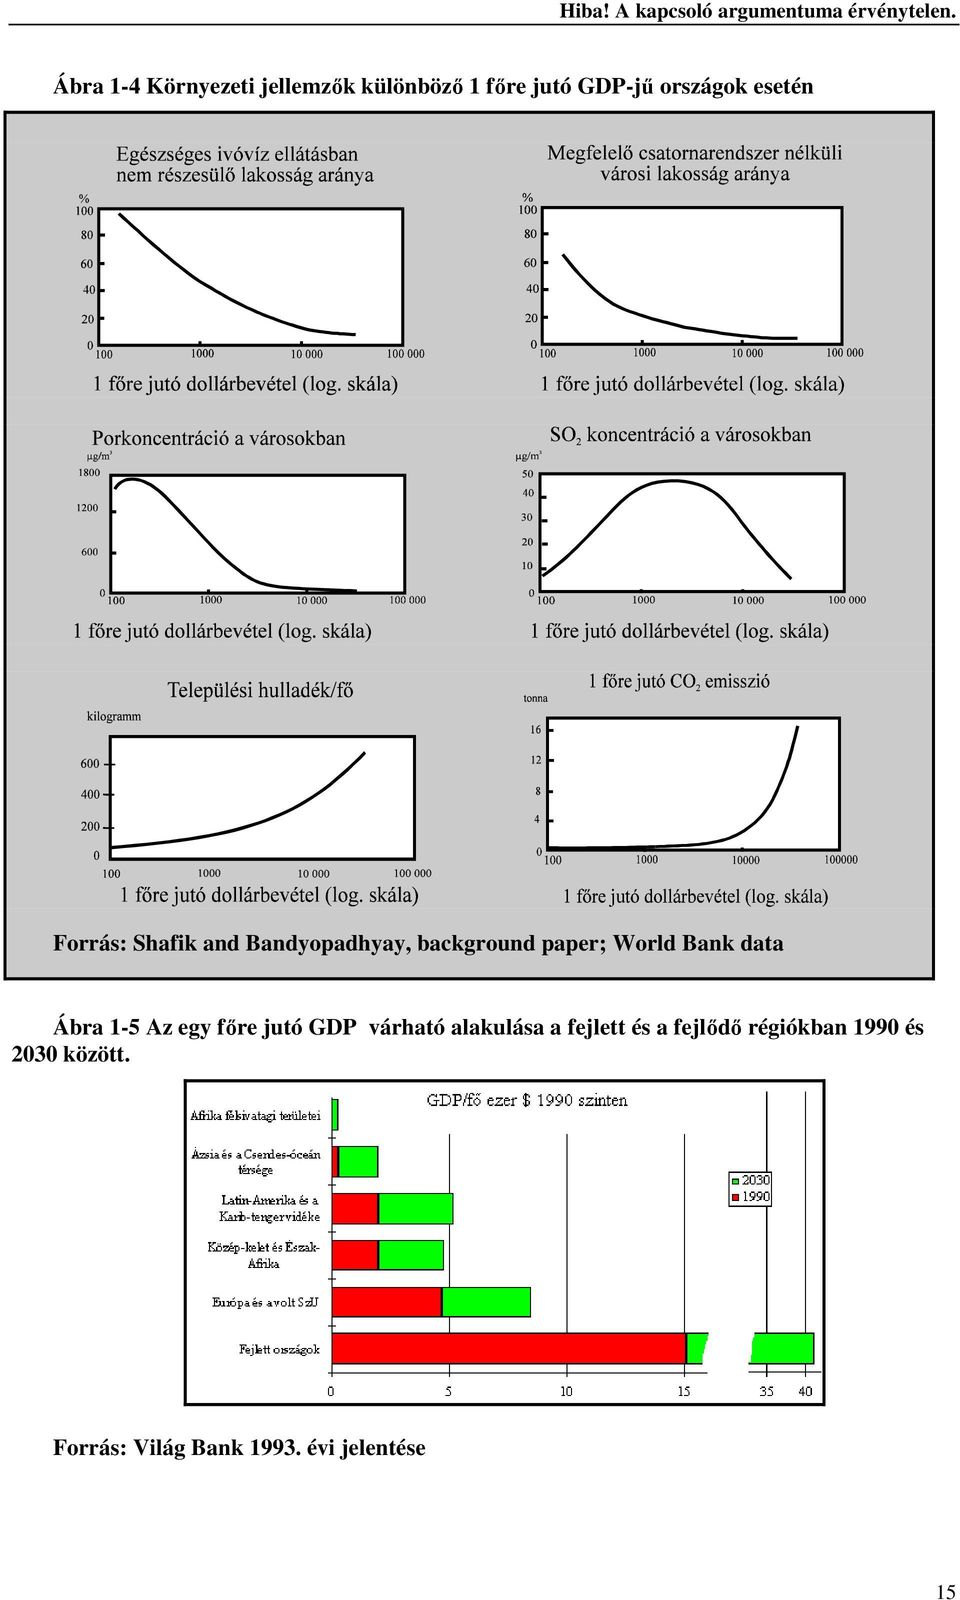 Forrás: Shafik and Bandyopadhyay, background paper; World Bank data Ábra 1-5 Az